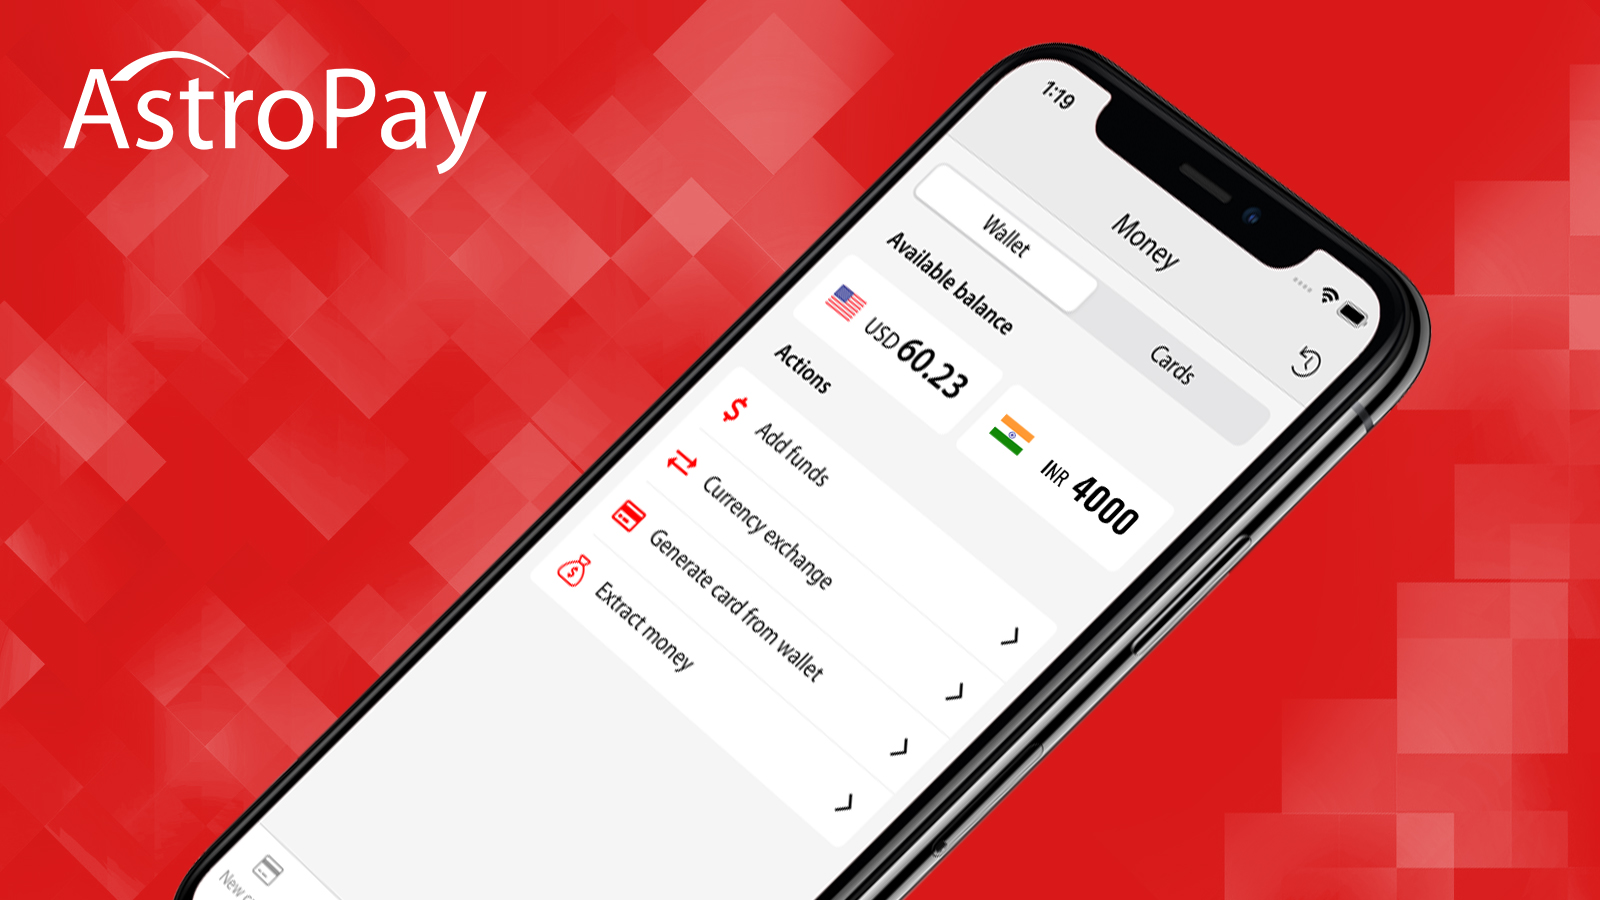 Download the Astropay mobile app, install it and make payments whenever you need to.